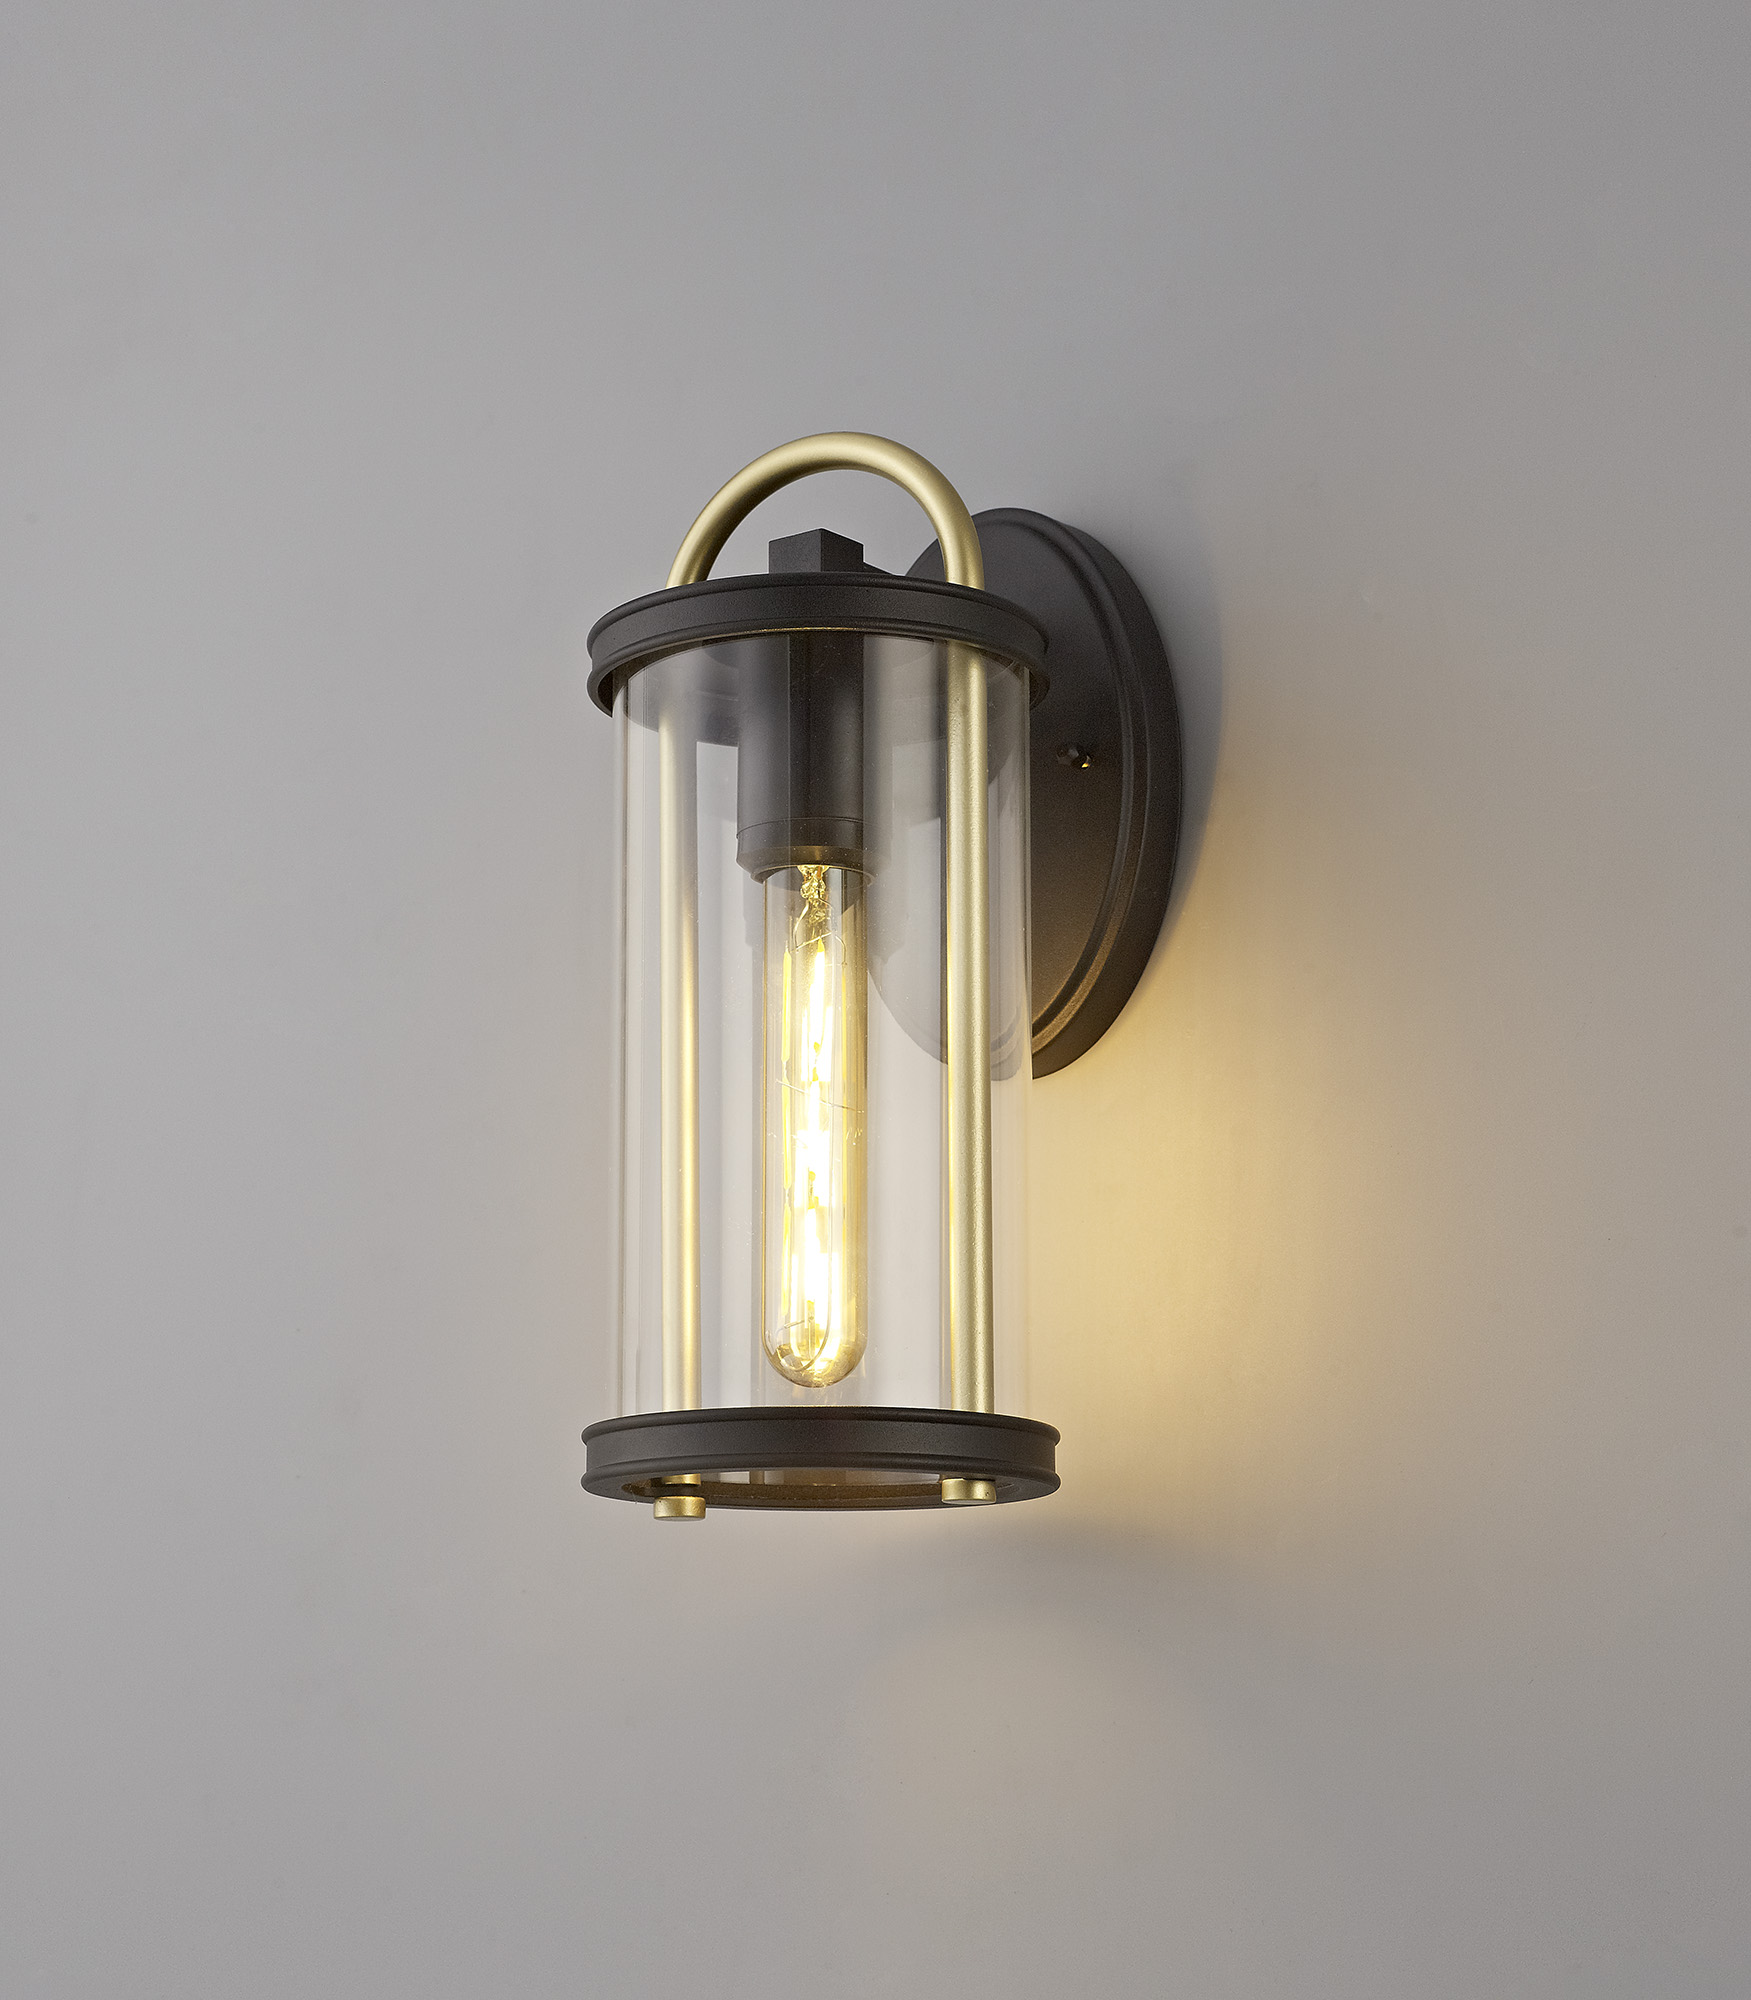 Small Wall Lamp, 1 x E27, Black & Gold/Clear Glass, IP54, 2yrs Warranty